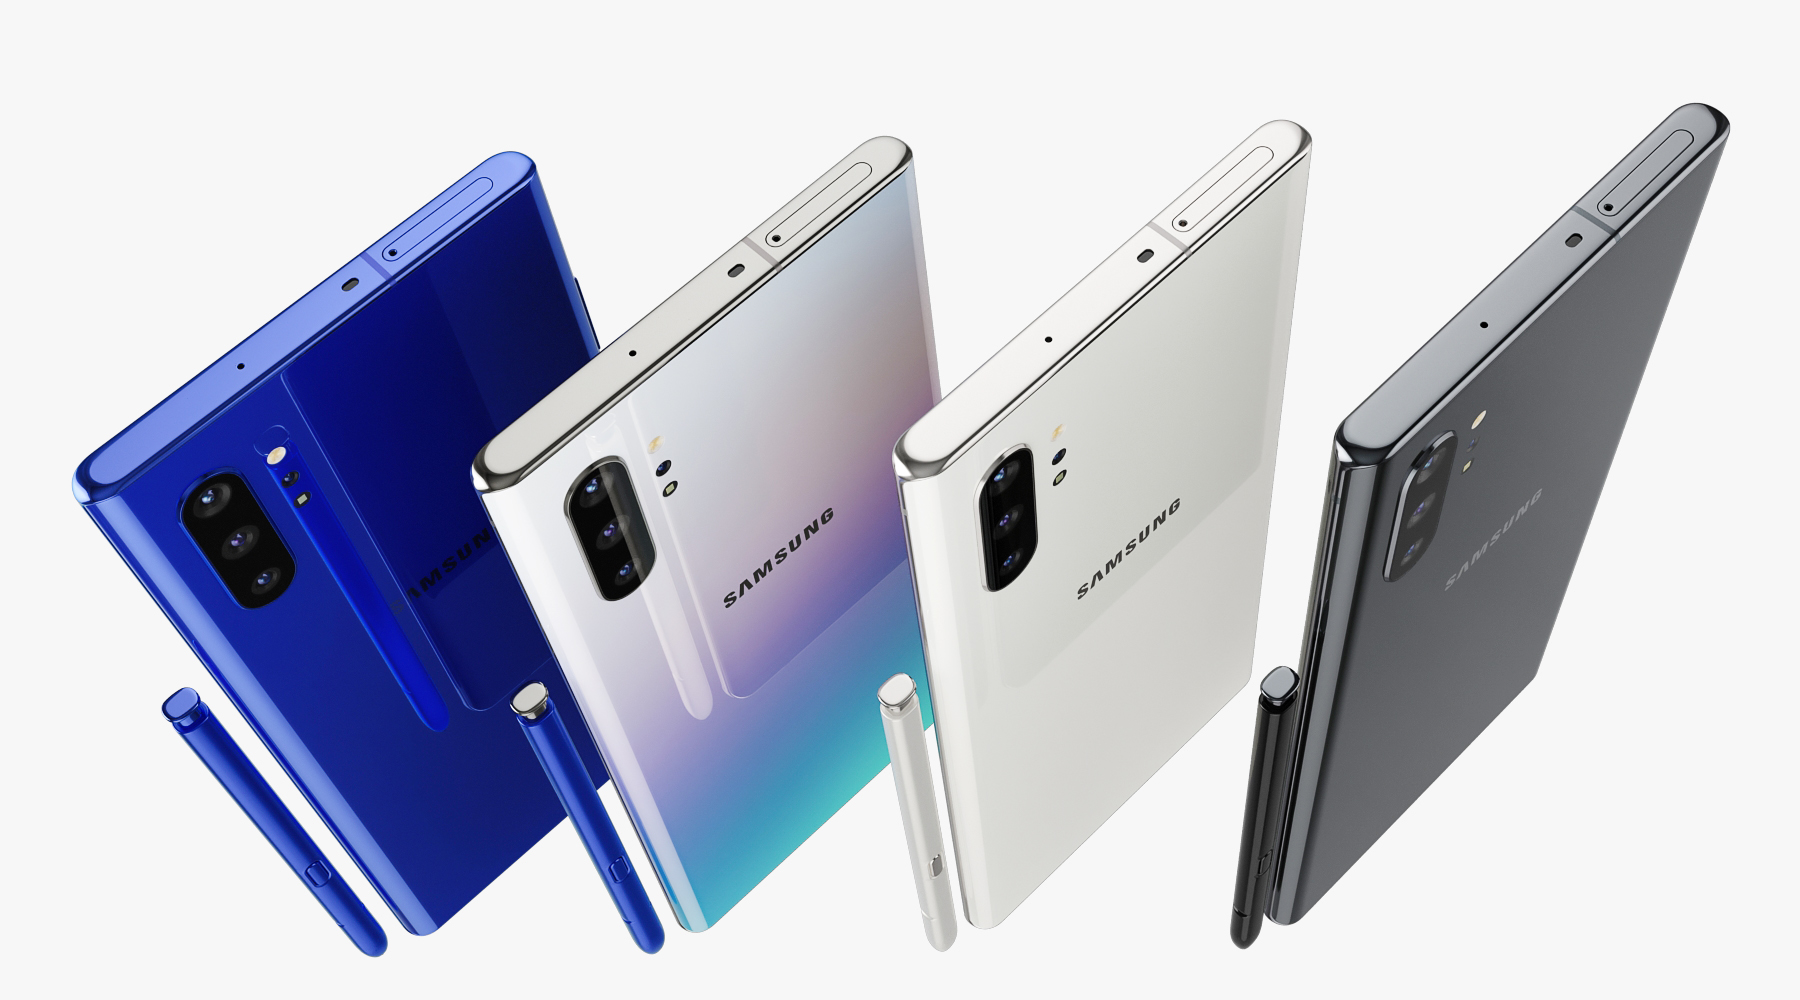 Samsung Galaxy Note 10 Plus All Colors By Madmix X 3docean